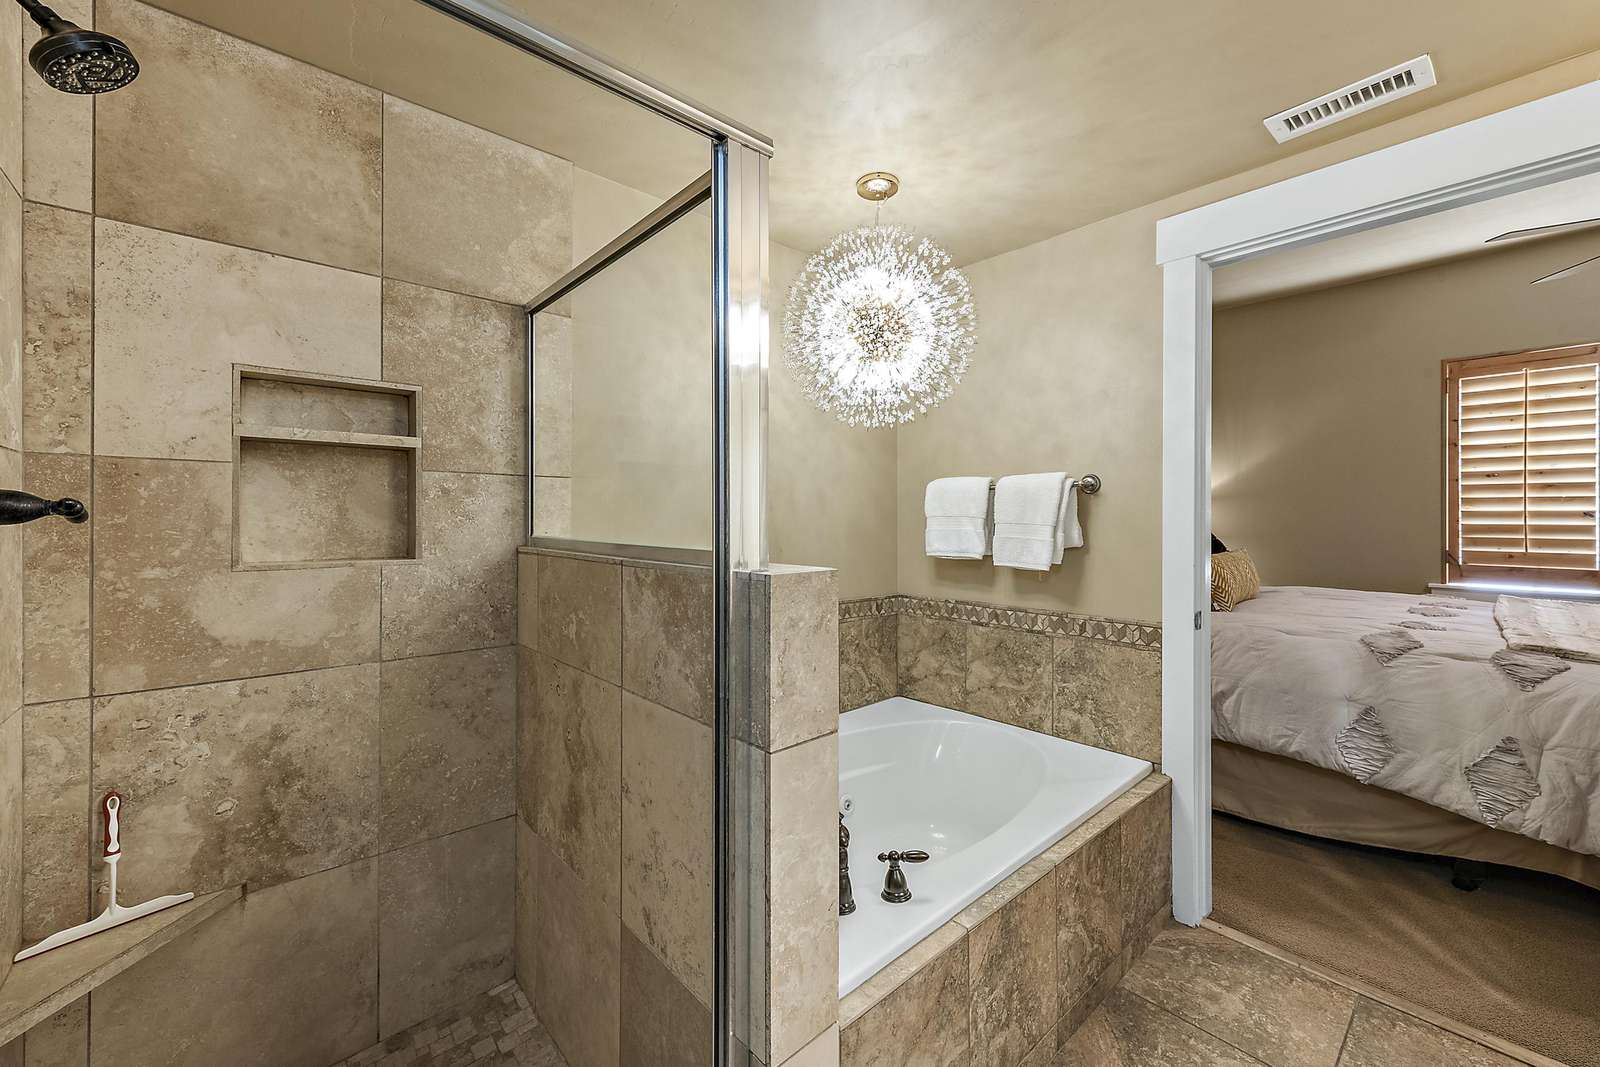 Master bathroom with large tub and shower